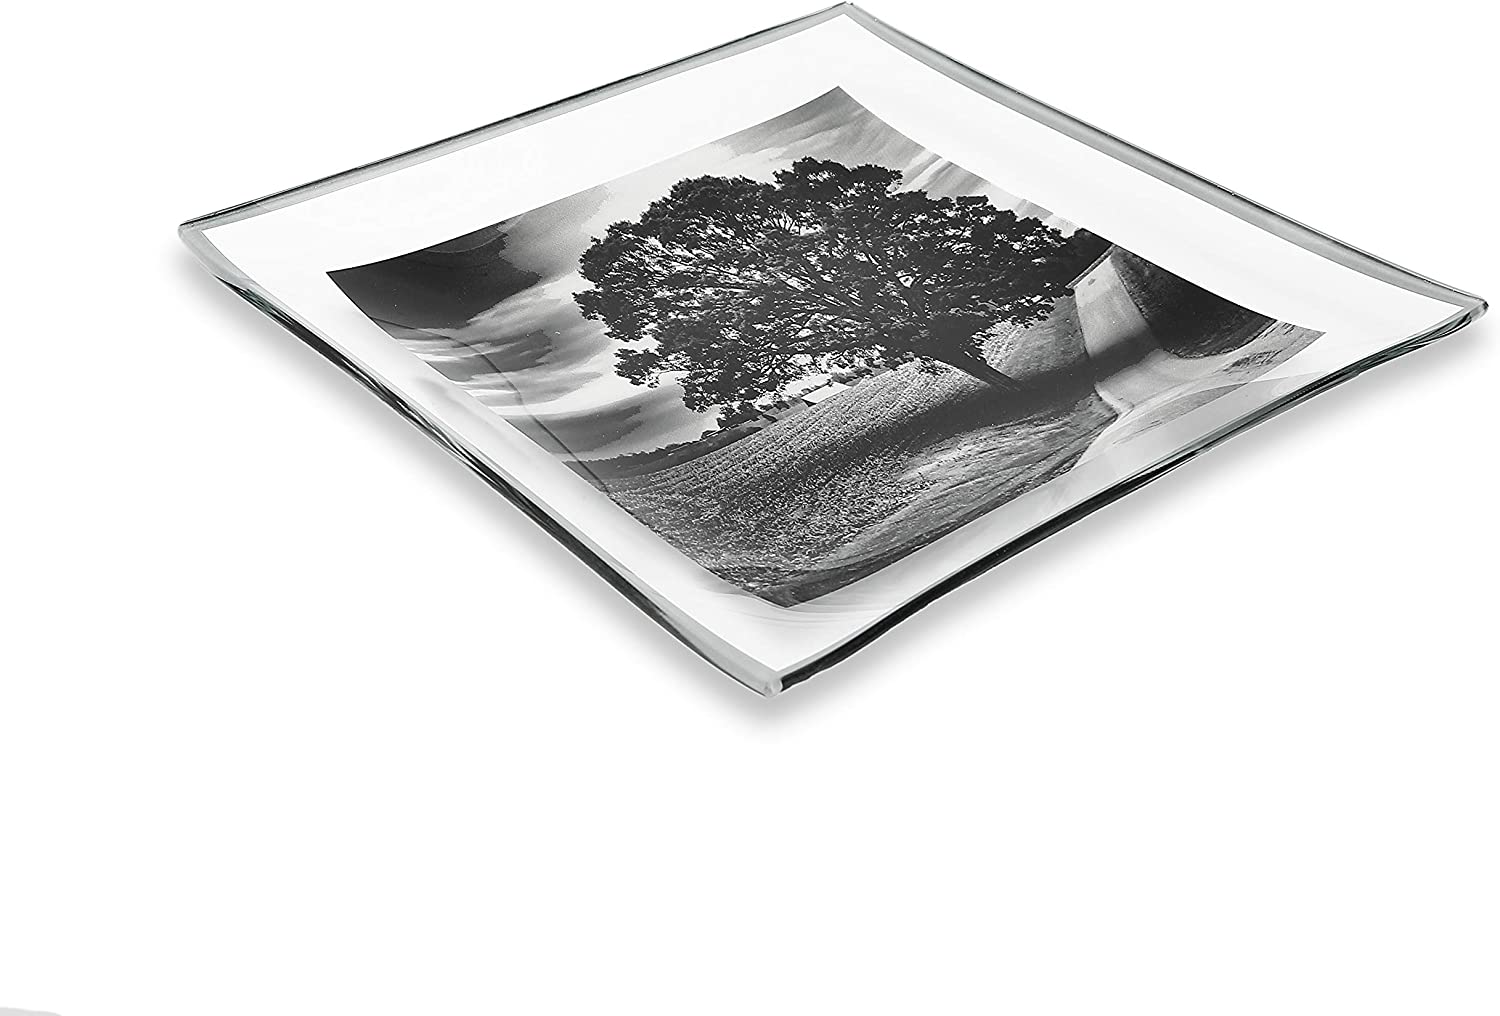 GAC Unique Landscape Design Square Tempered Glass Serving Plates – 10.5 Inch – Set of 2 – Break Resistant – Oven Proof - Microwave and Dishwasher Safe – Attractive Charcoal Colored Dinner Plate Set